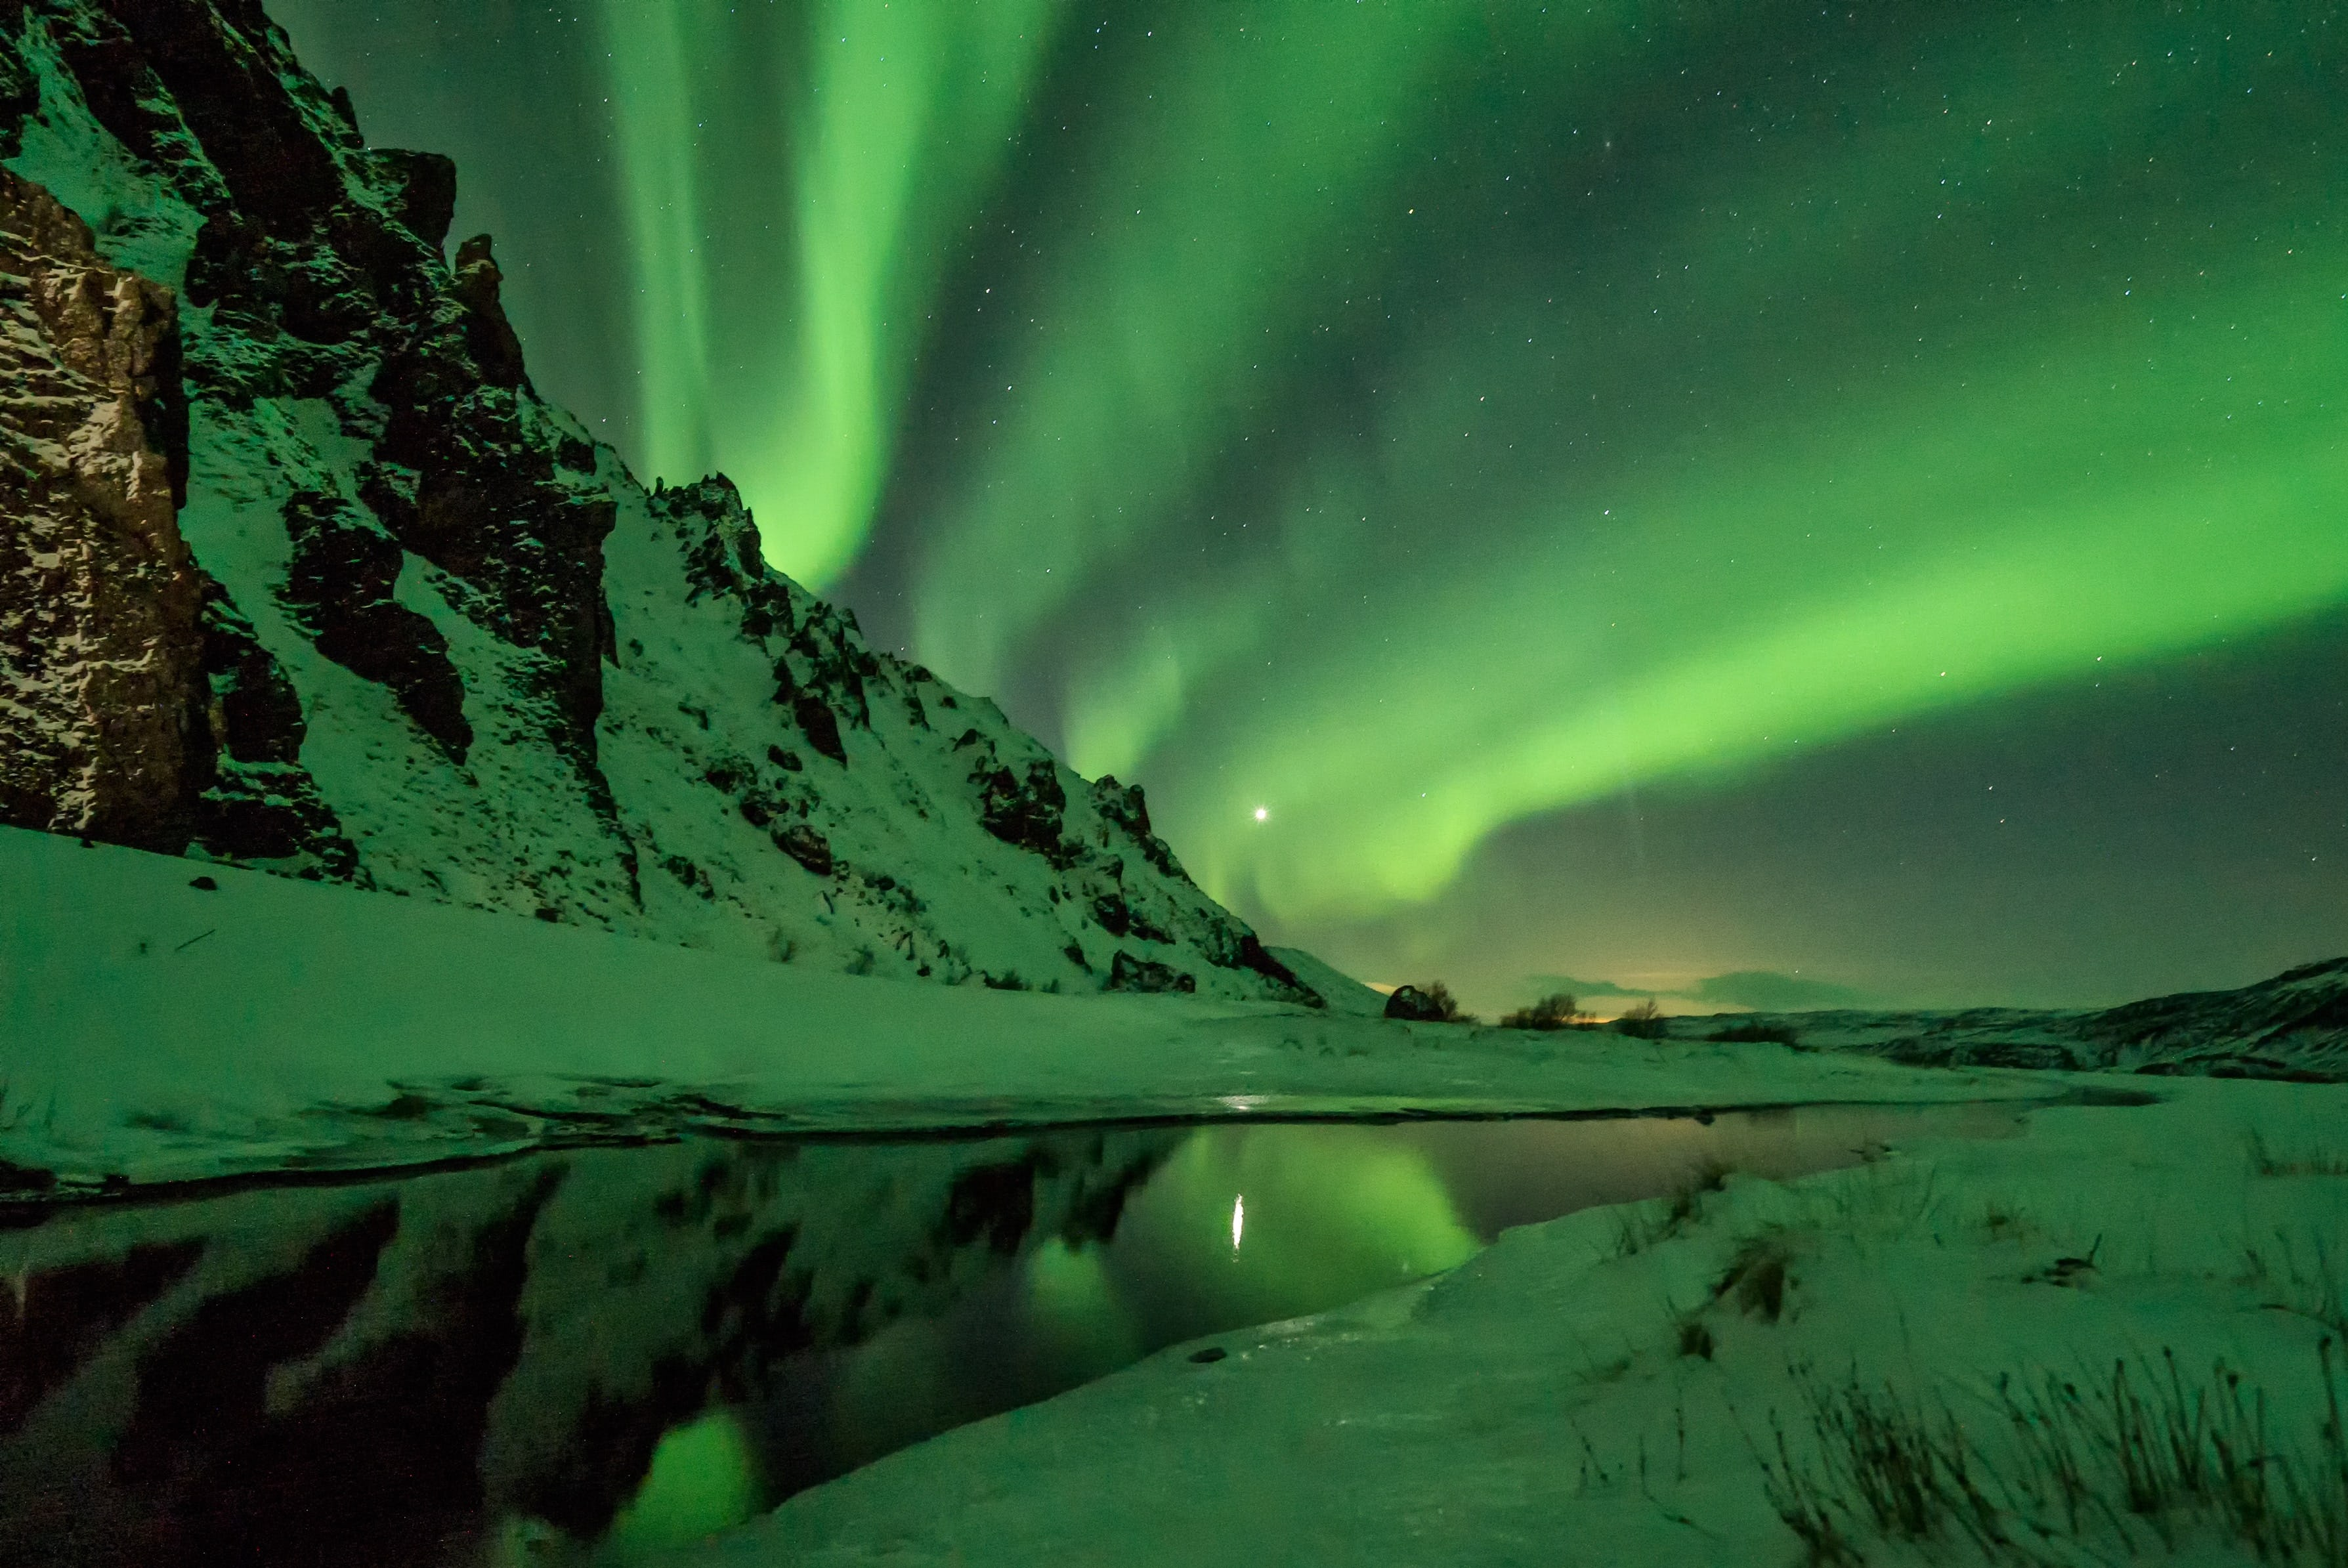 The Northern Lights are stunning to behold.